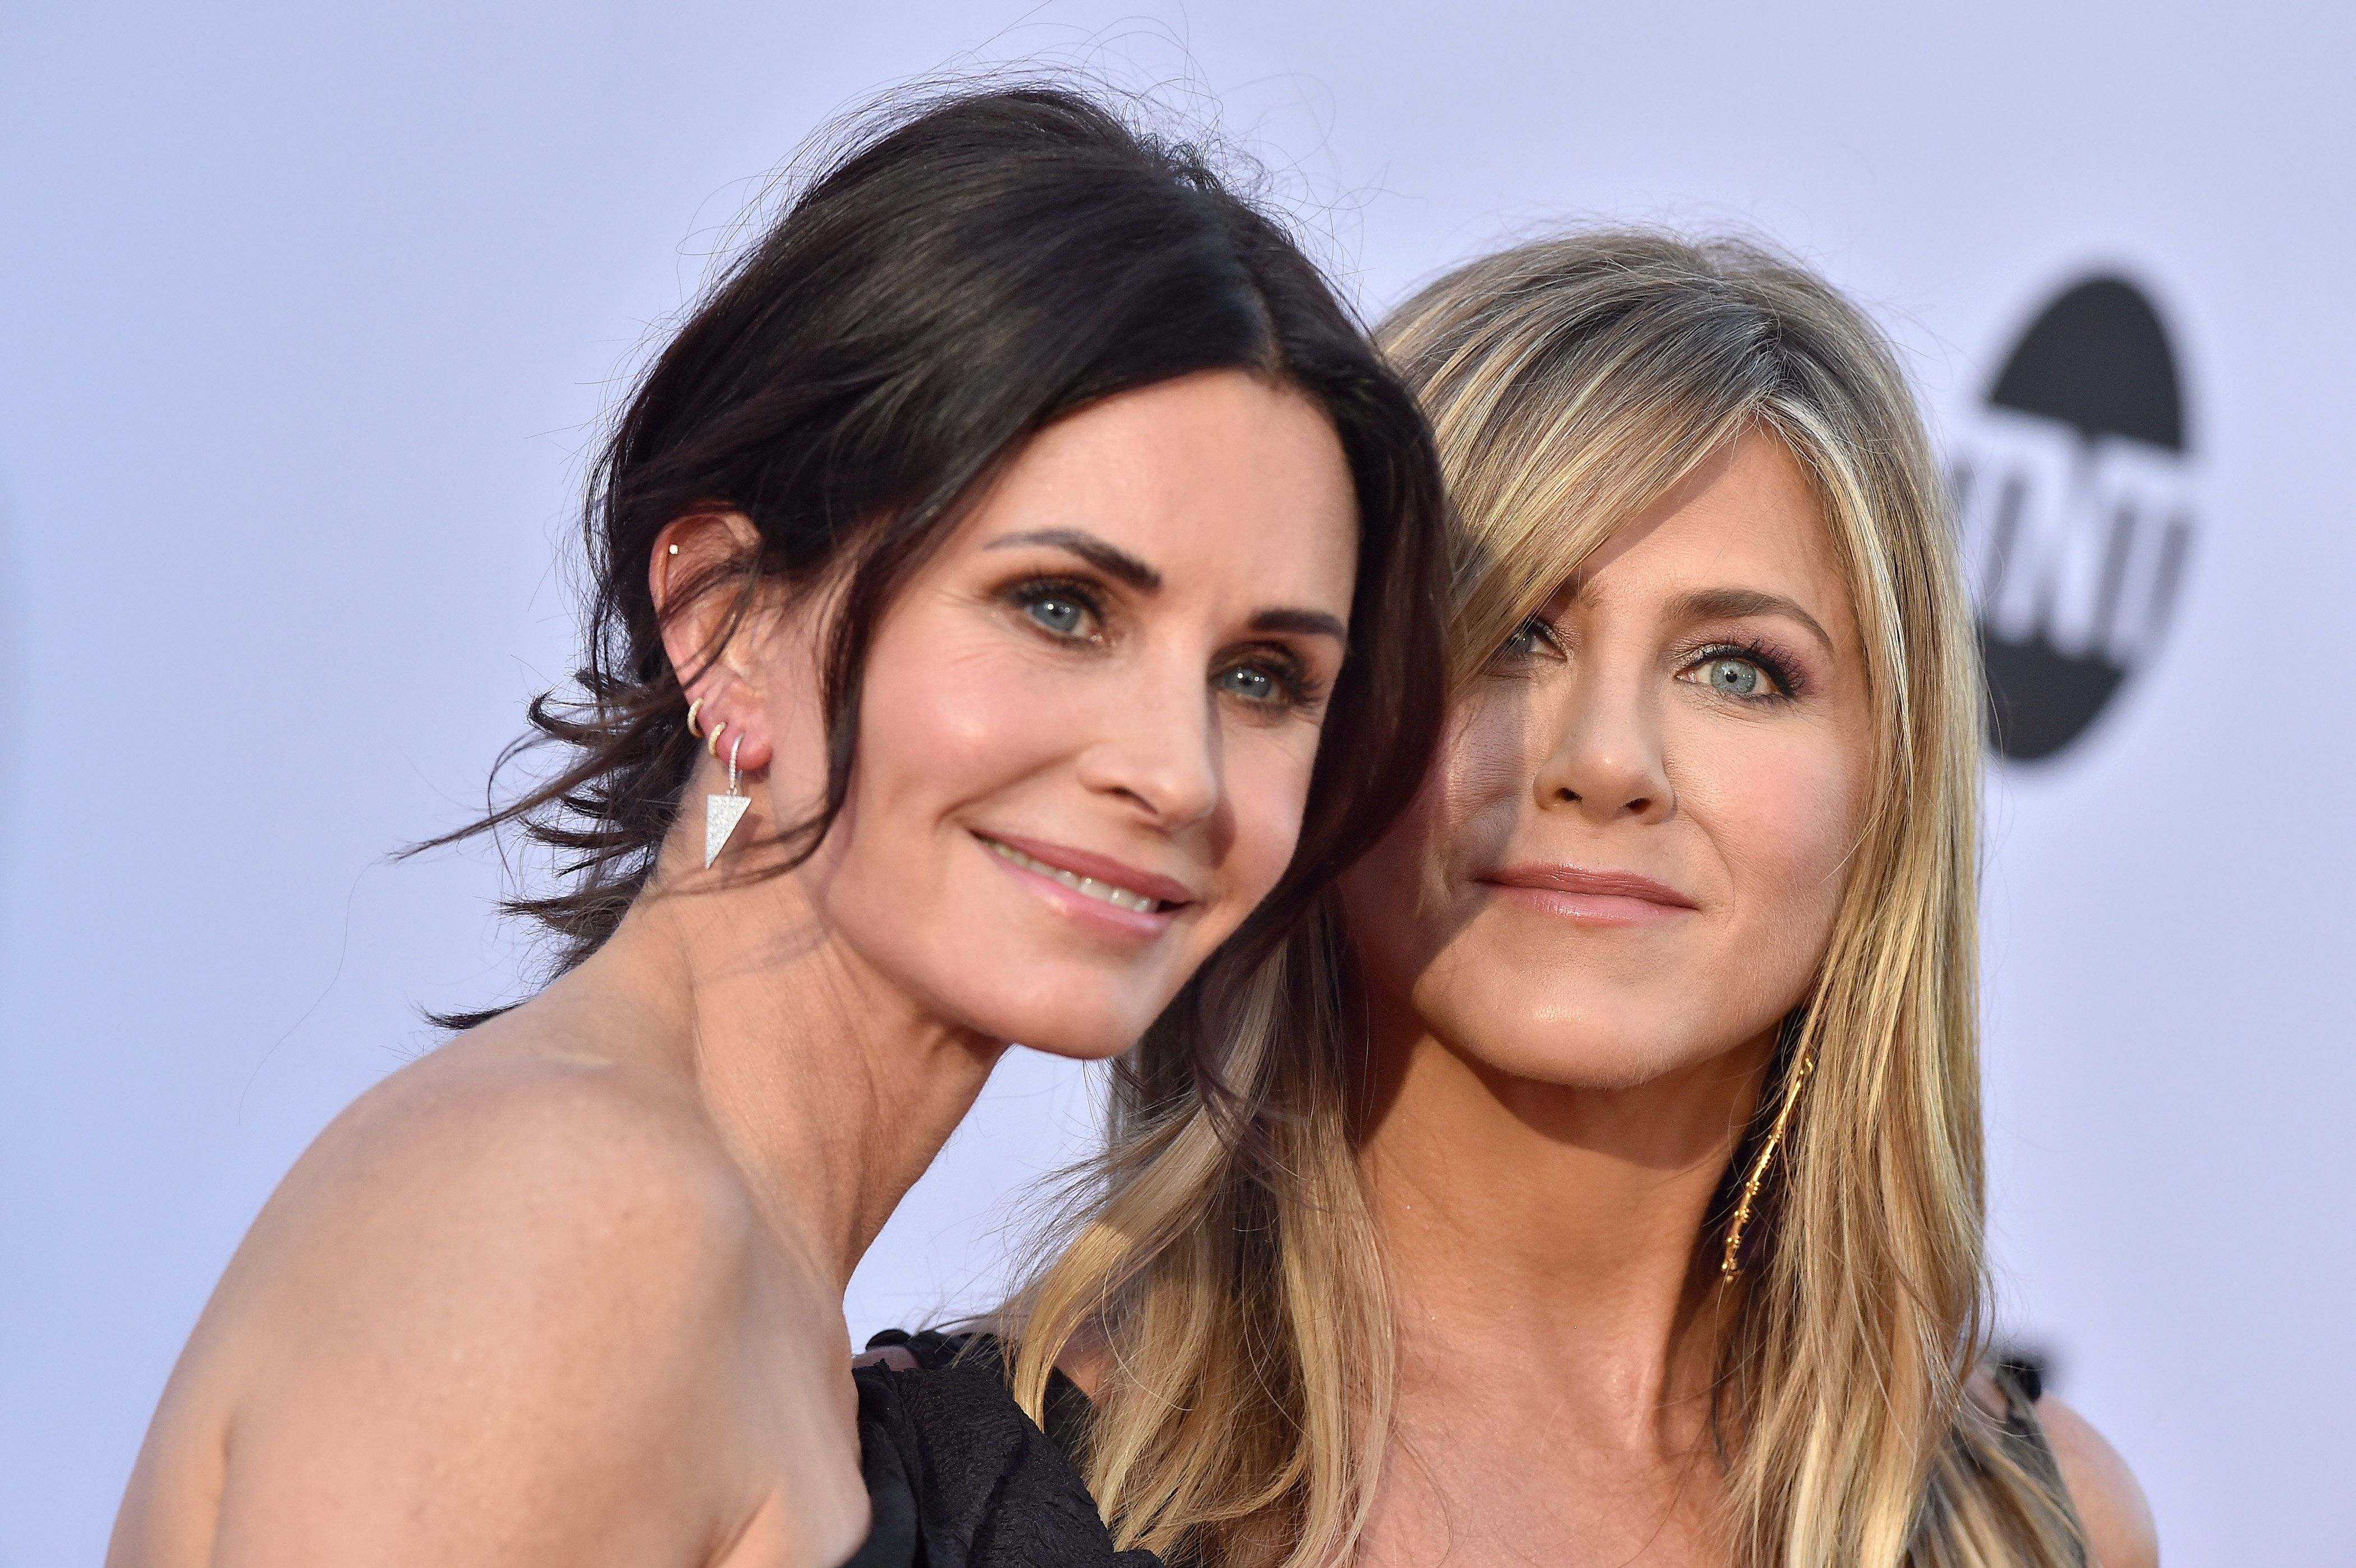 Jennifer Aniston And Courteney Cox's Private Jet Loses Tyre En Route To Friends' Star's 50th